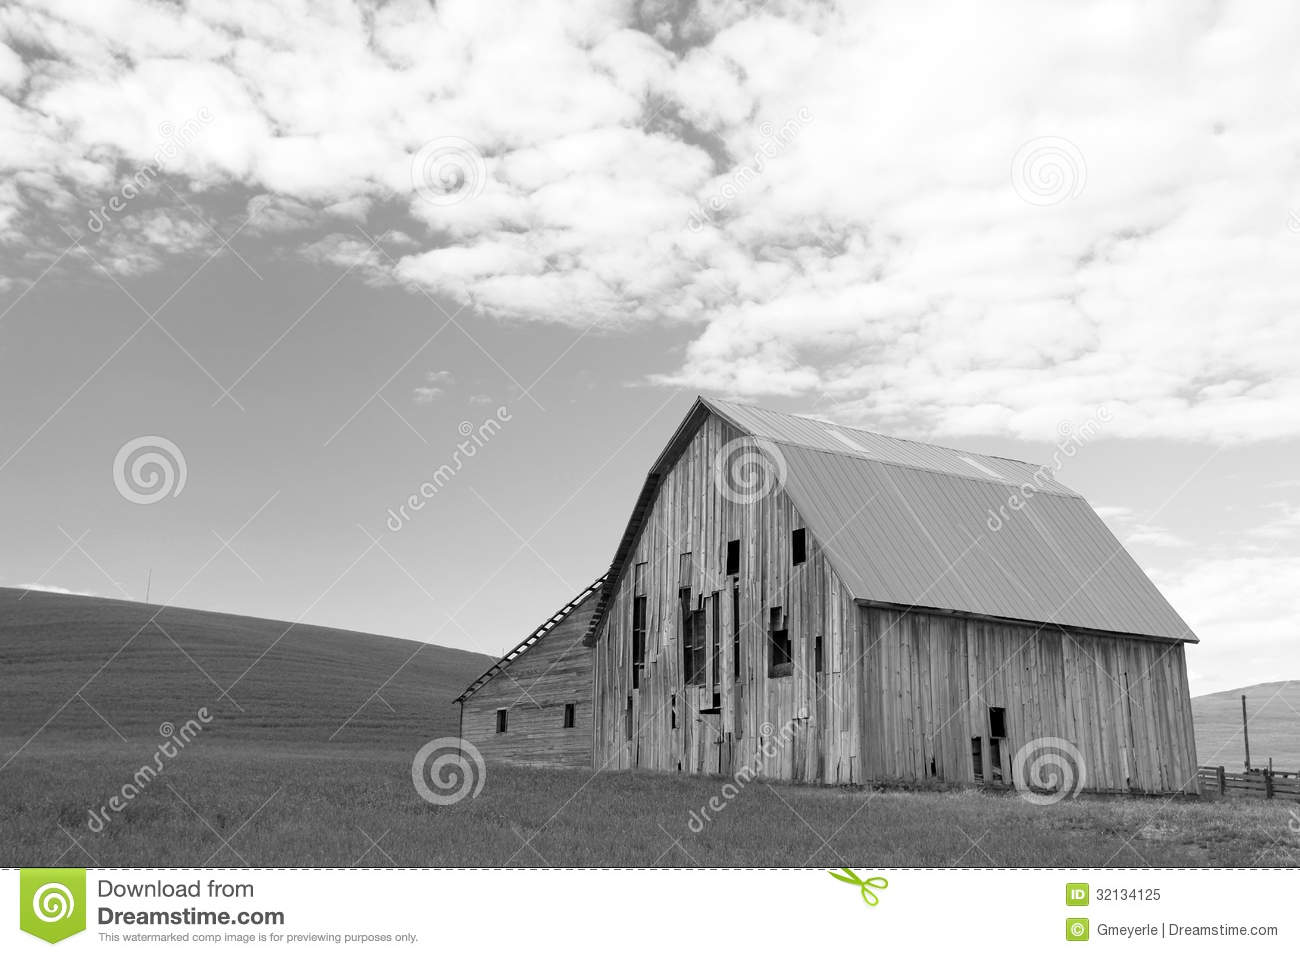 Barn In Hilly Field With Sky Filled With Puffy Clouds In Background